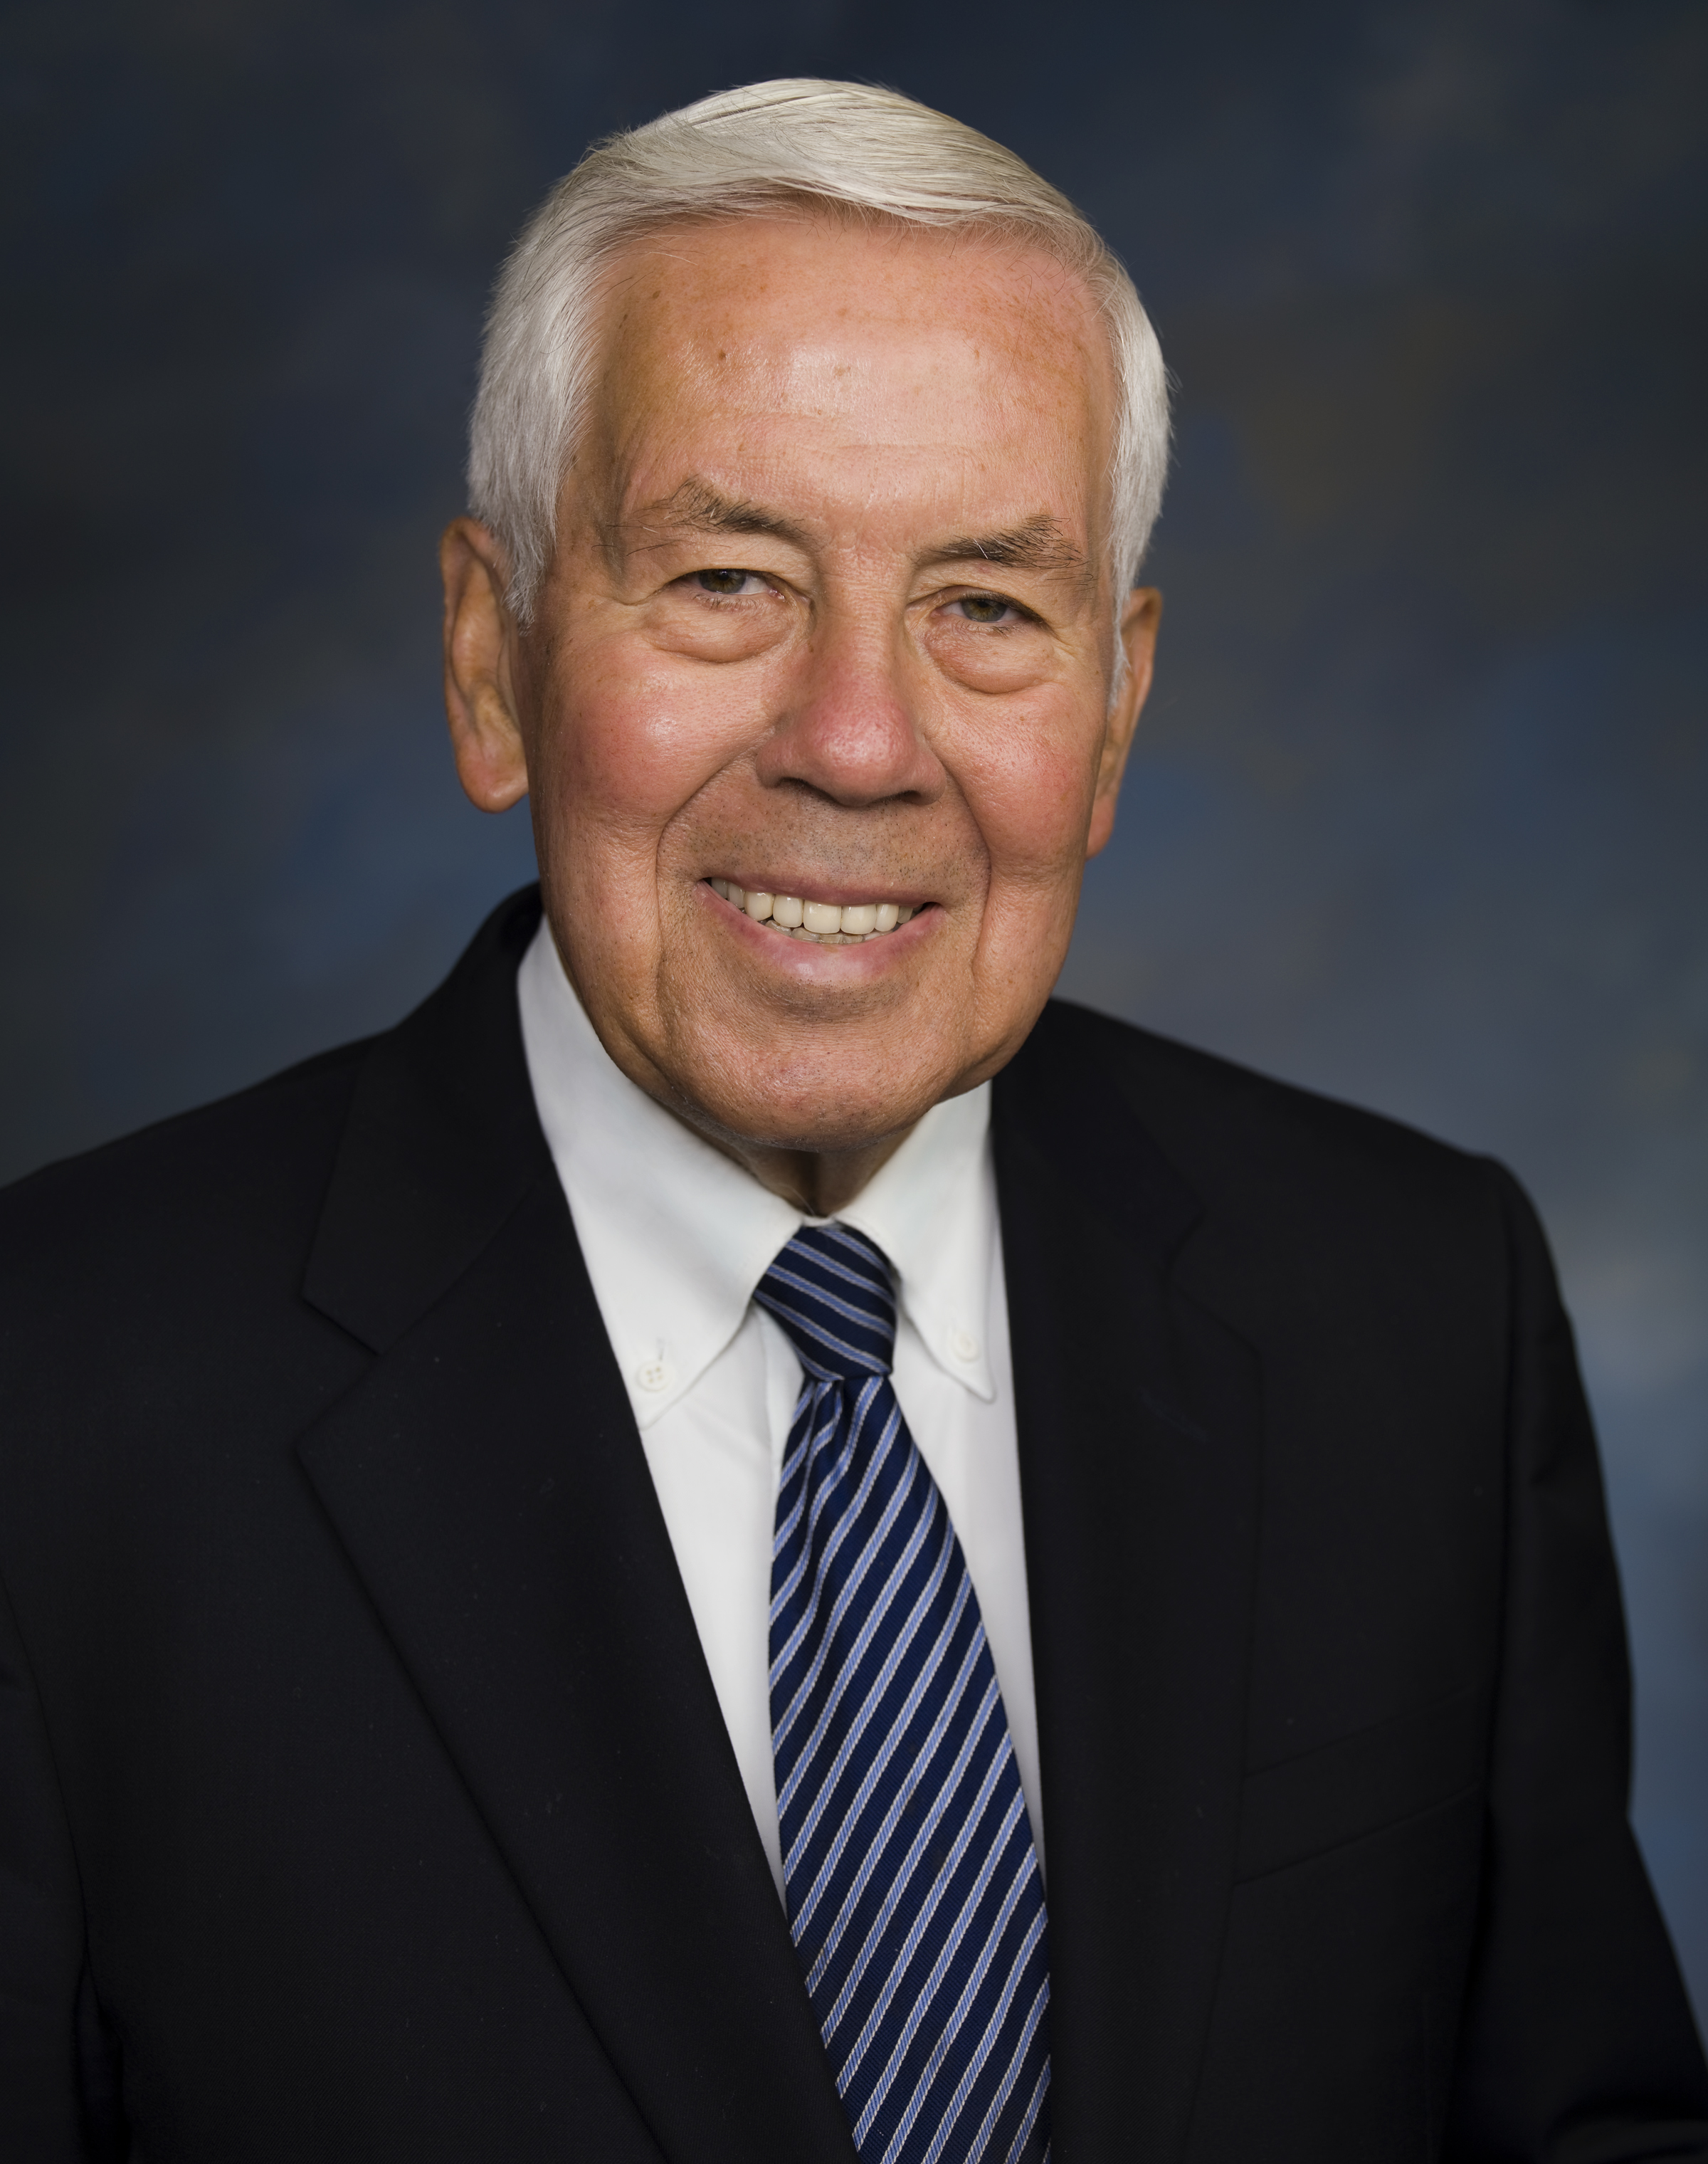 Richard Lugar - Wikipedia, la enciclopedia libre